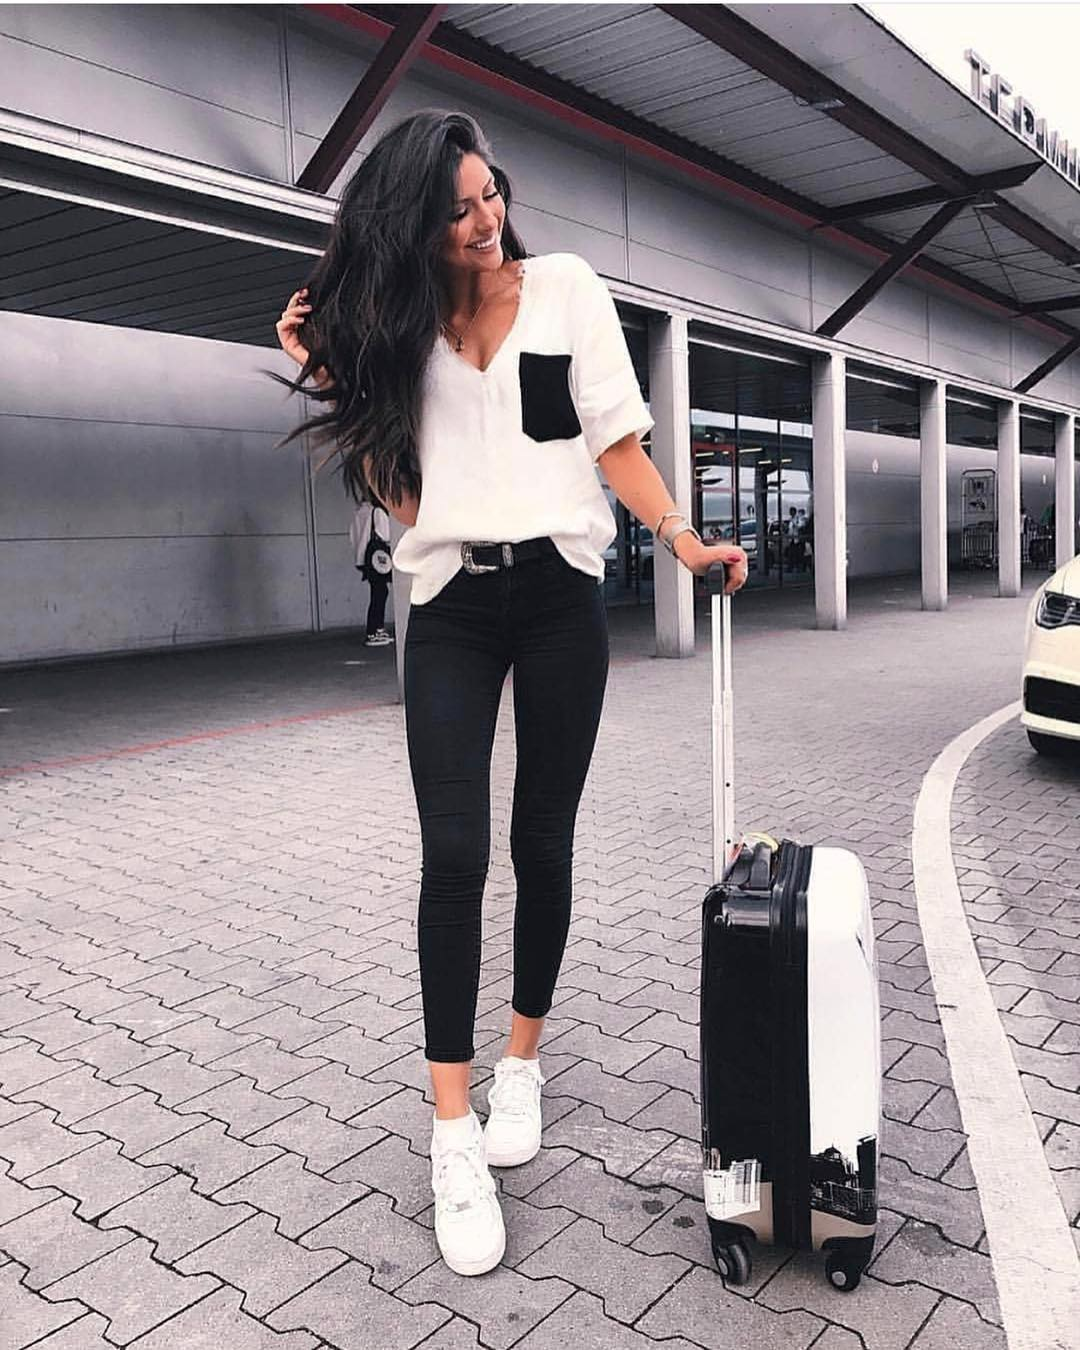 Black White OOTD For Airport 2019